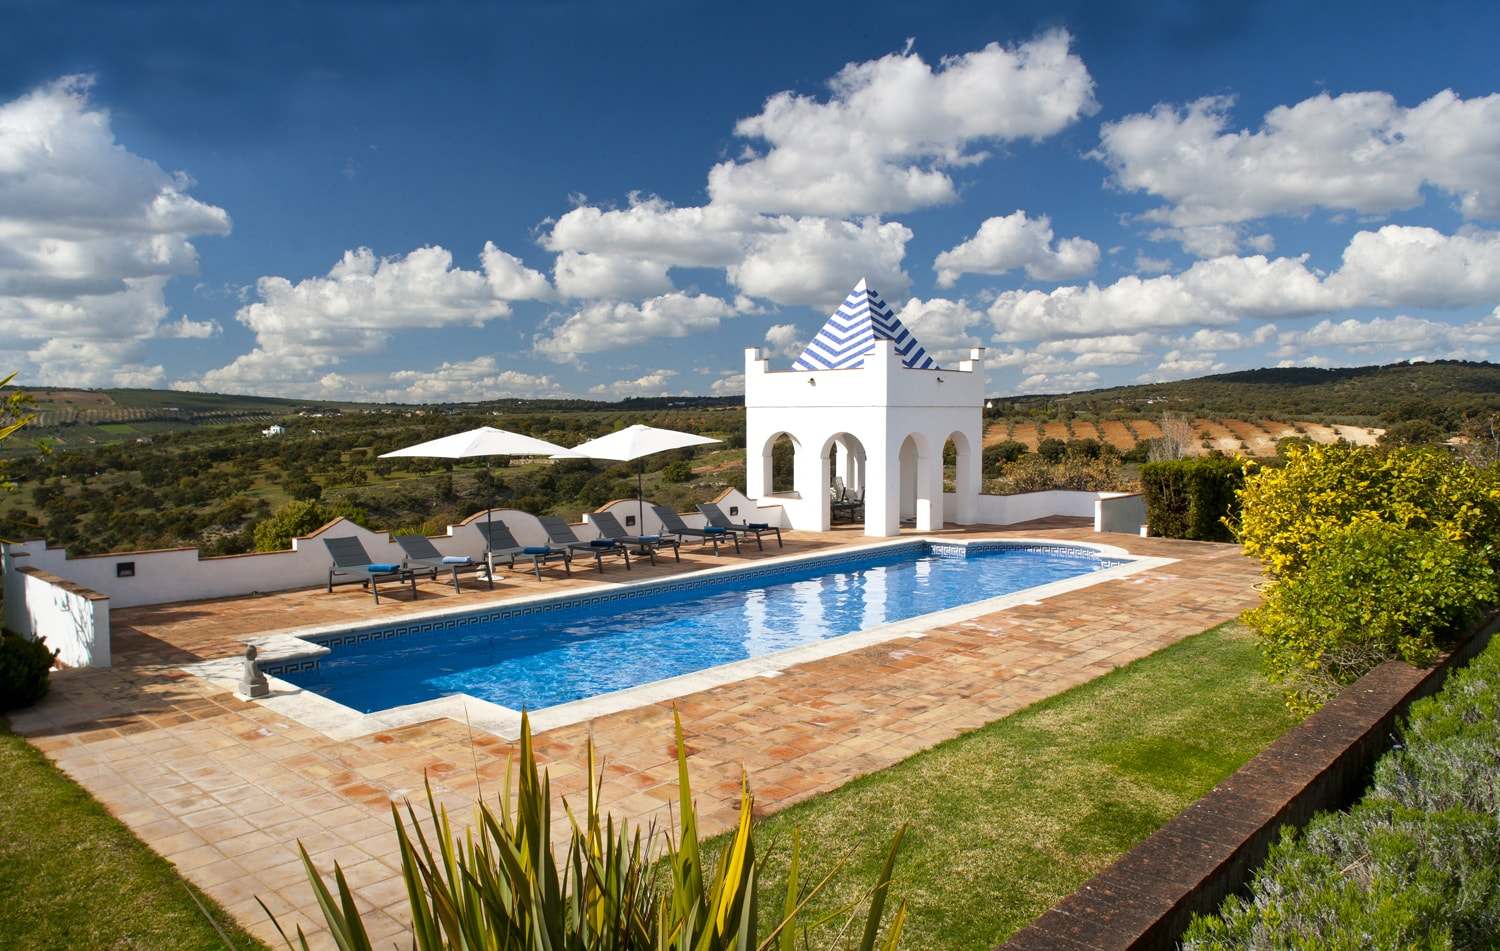 holiday villas spain pool